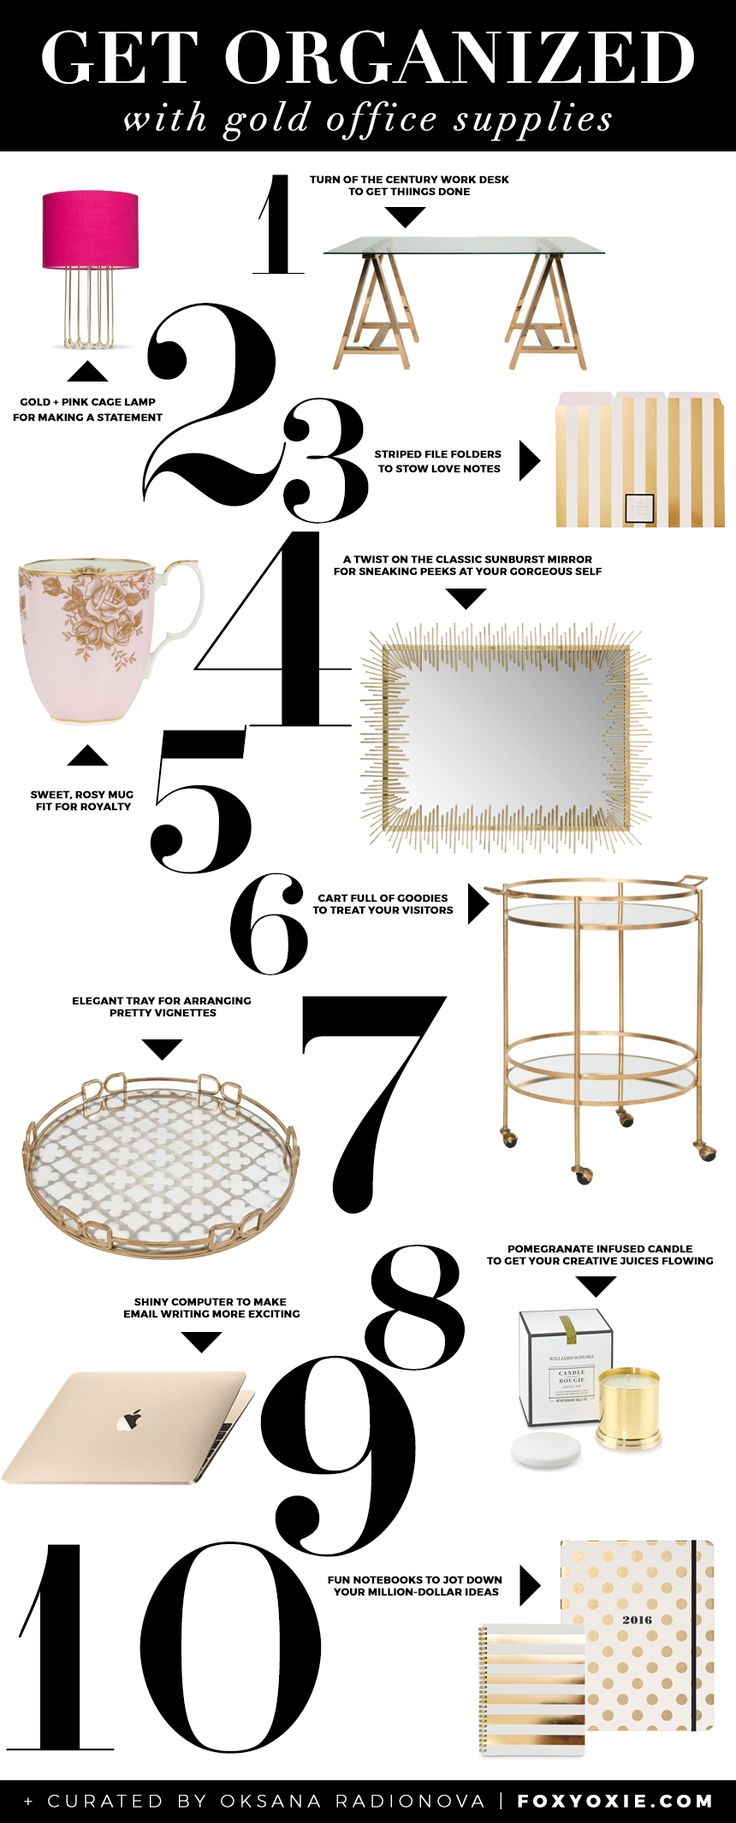 Best 25+ Gold Office Supplies Ideas On Pinterest | Chic Cubicle Decor, Chic  Desk And Wall Planner